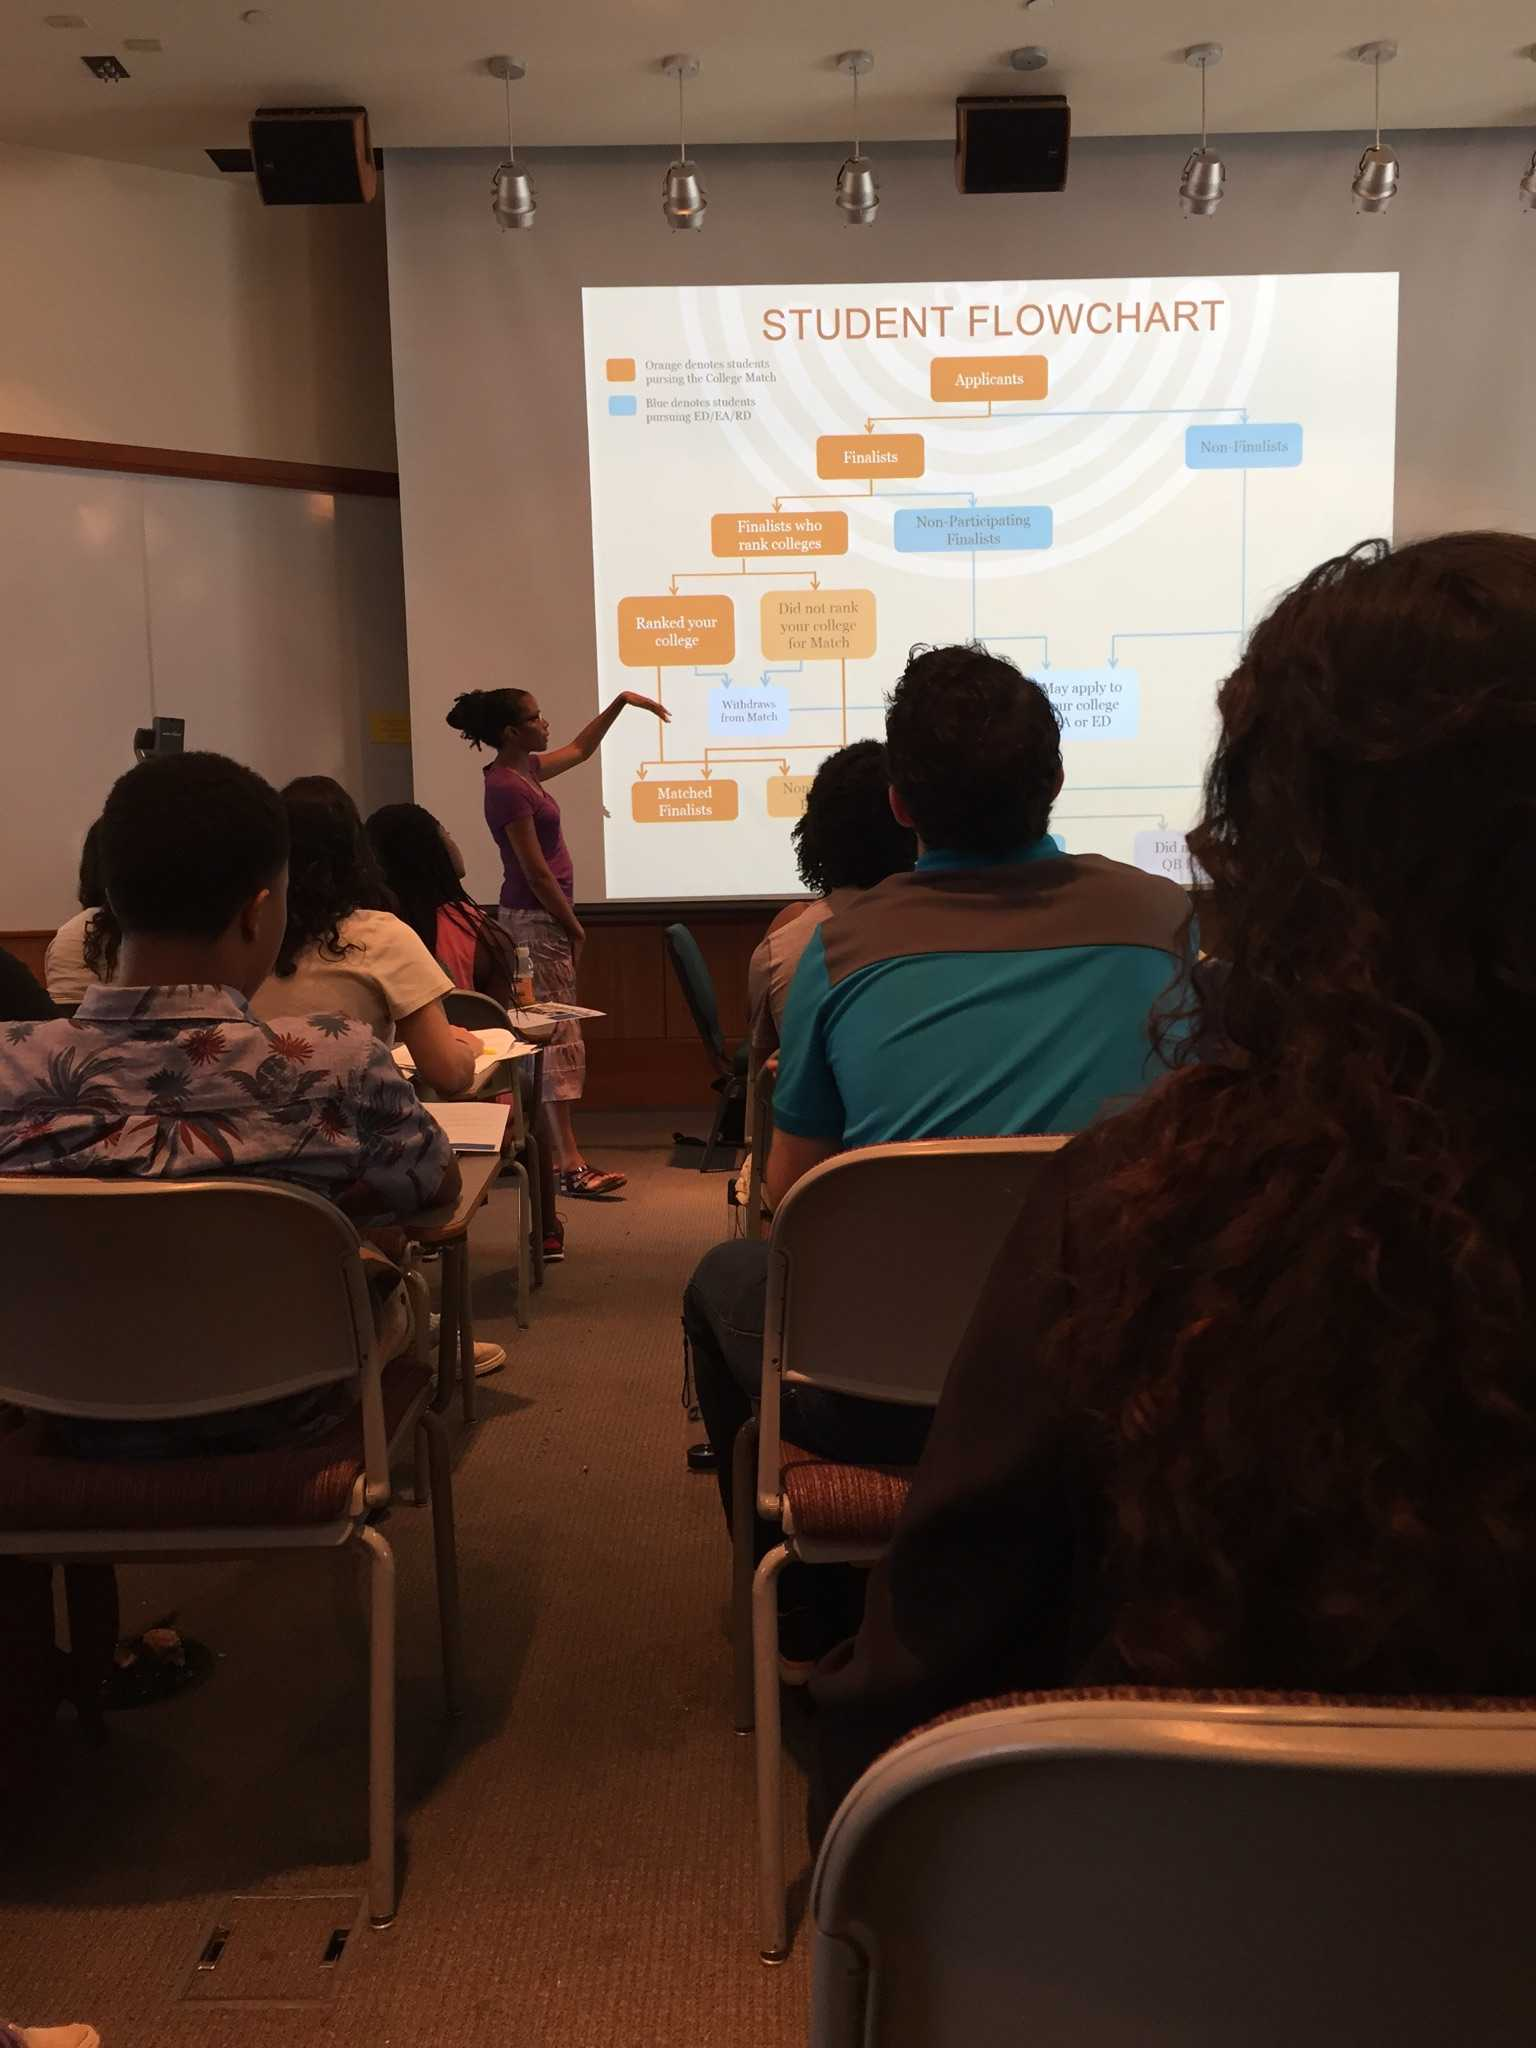 A view from a college animal communication class Perla Grimaldo-Remirez (12) sat in at Pomona College.